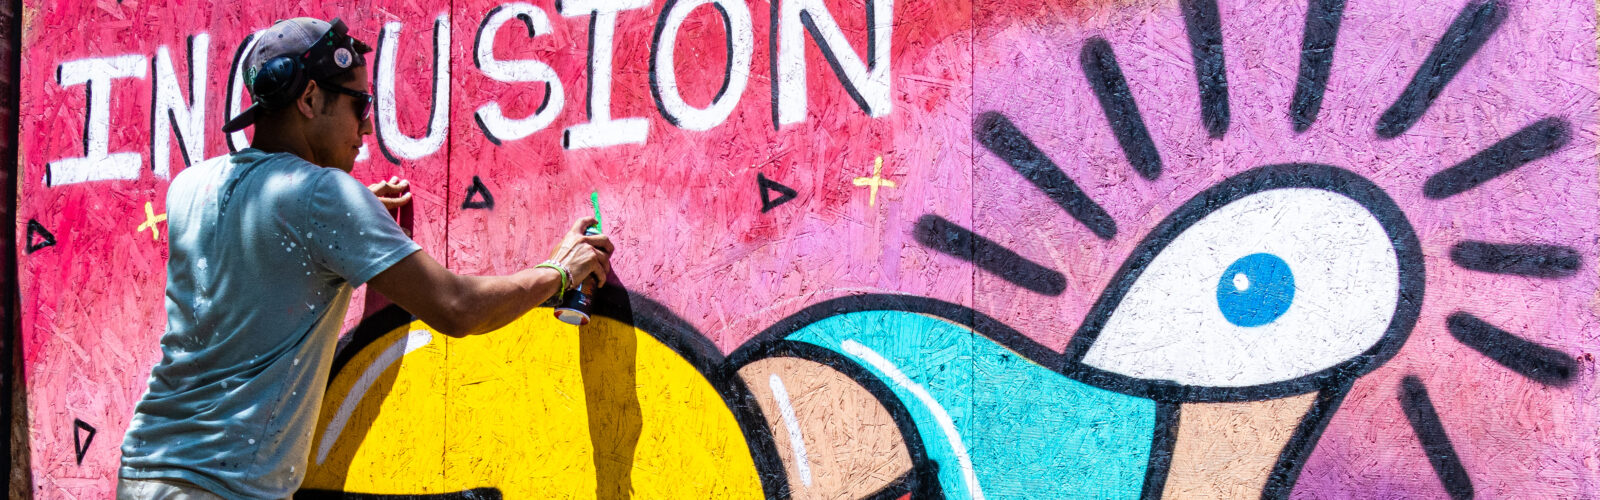 """A man stands on a ladder and sprays paint to create a large, colorful abstract image with the word """"INCLUSION"""" on plywood window coverings"""